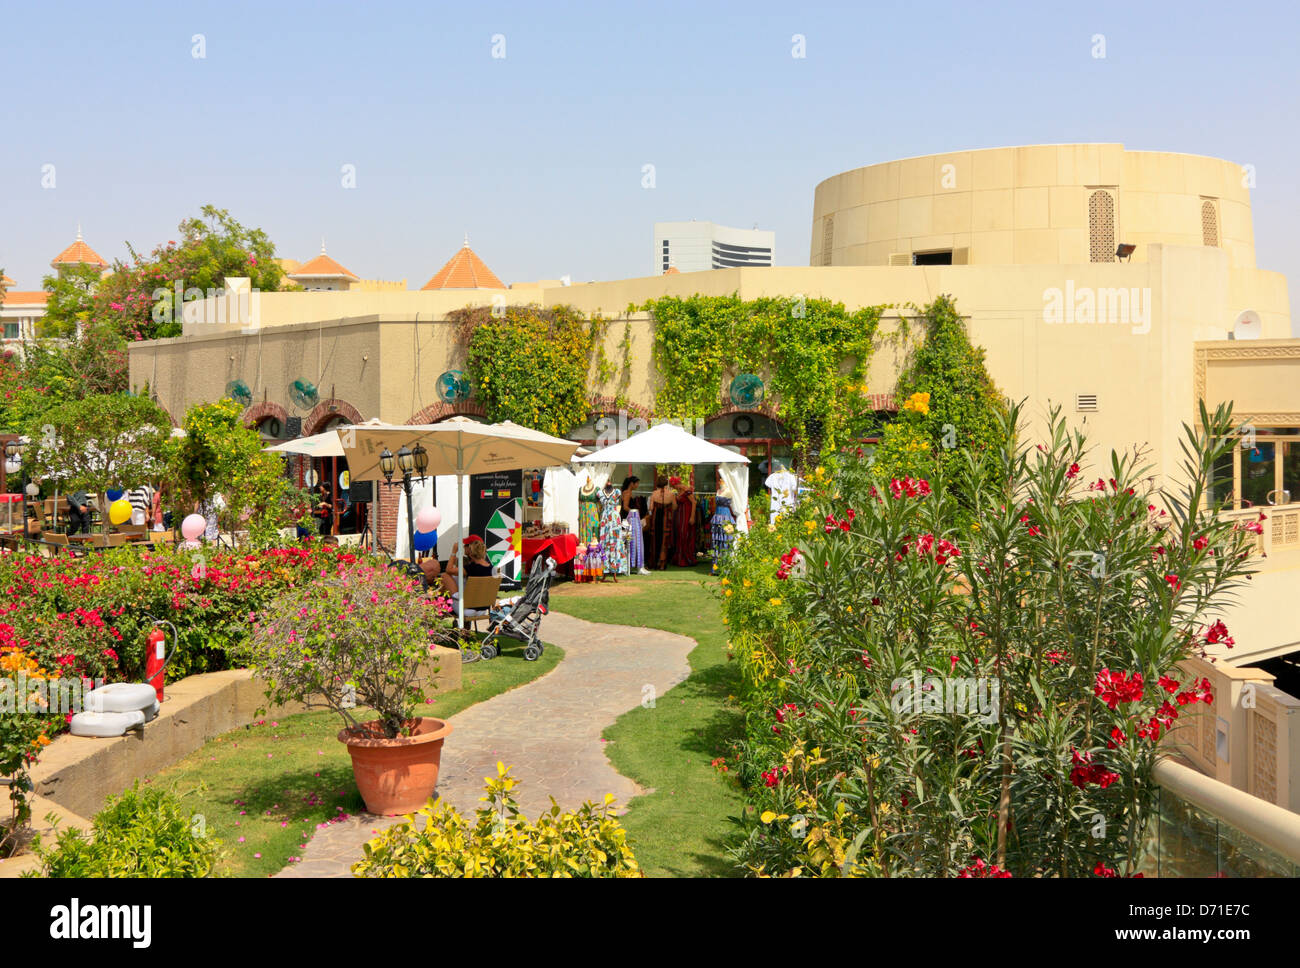 Roof Top Garden With Open Air Restaurants And Cafe At The Wafi Shopping Mall,  Dubai, United Arab Emirates